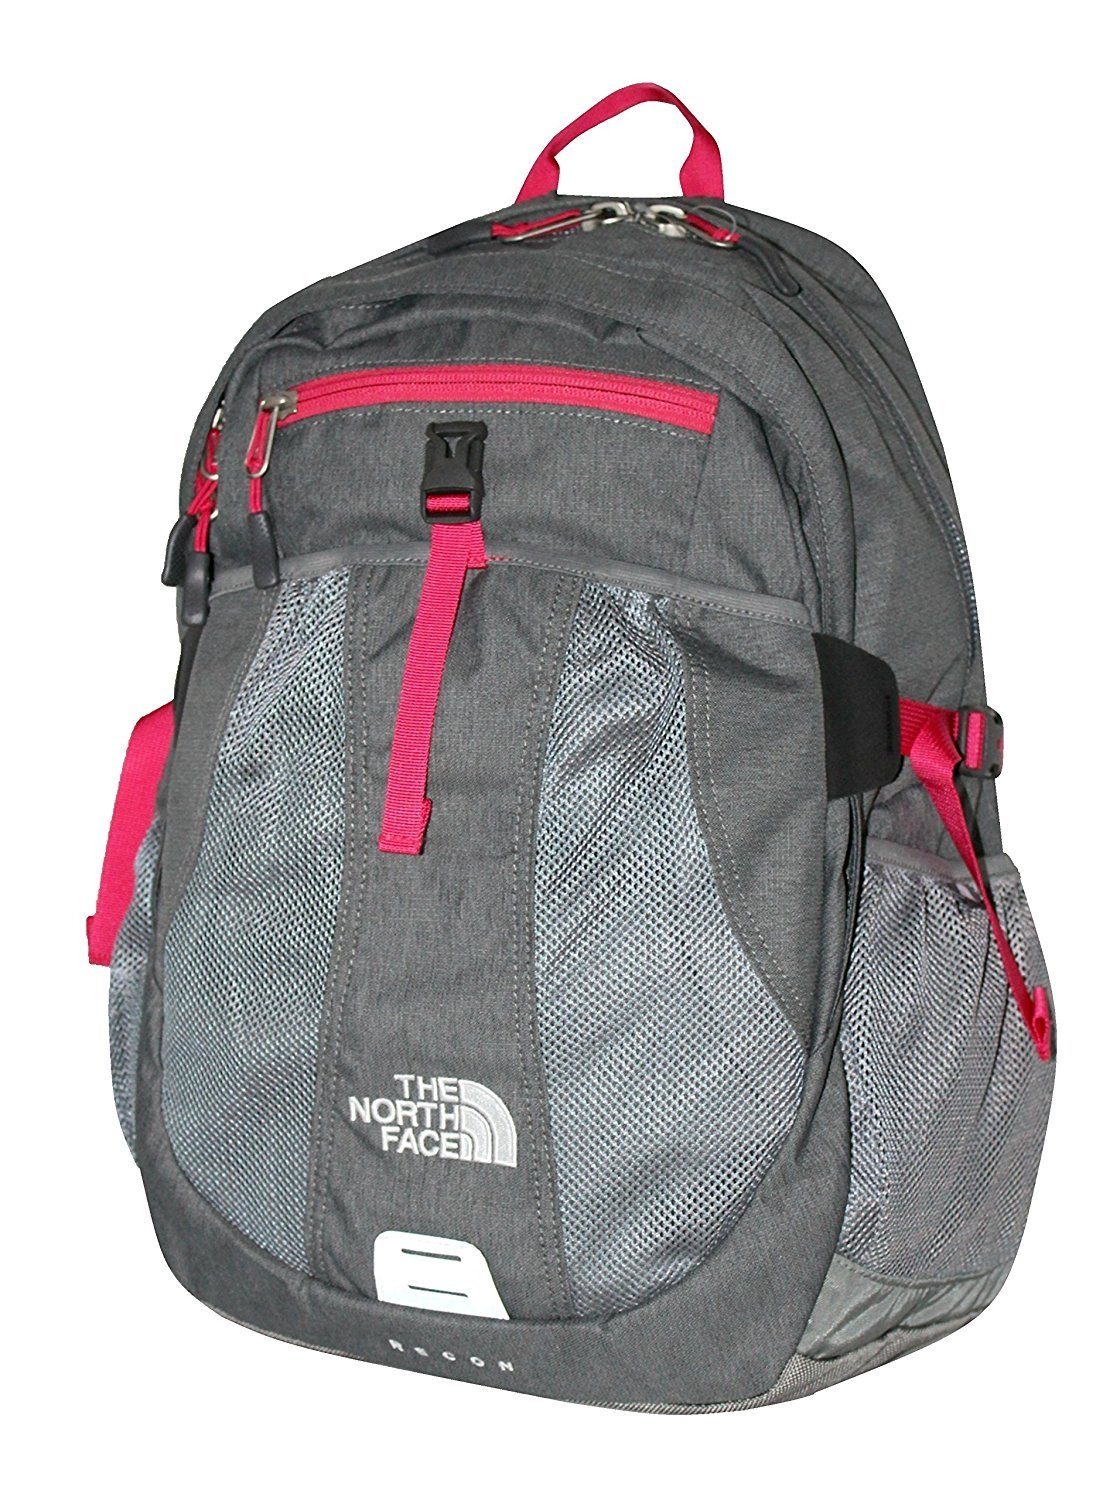 e2e6e7ca16c7 North Face Backpack Womens Recon- Fenix Toulouse Handball